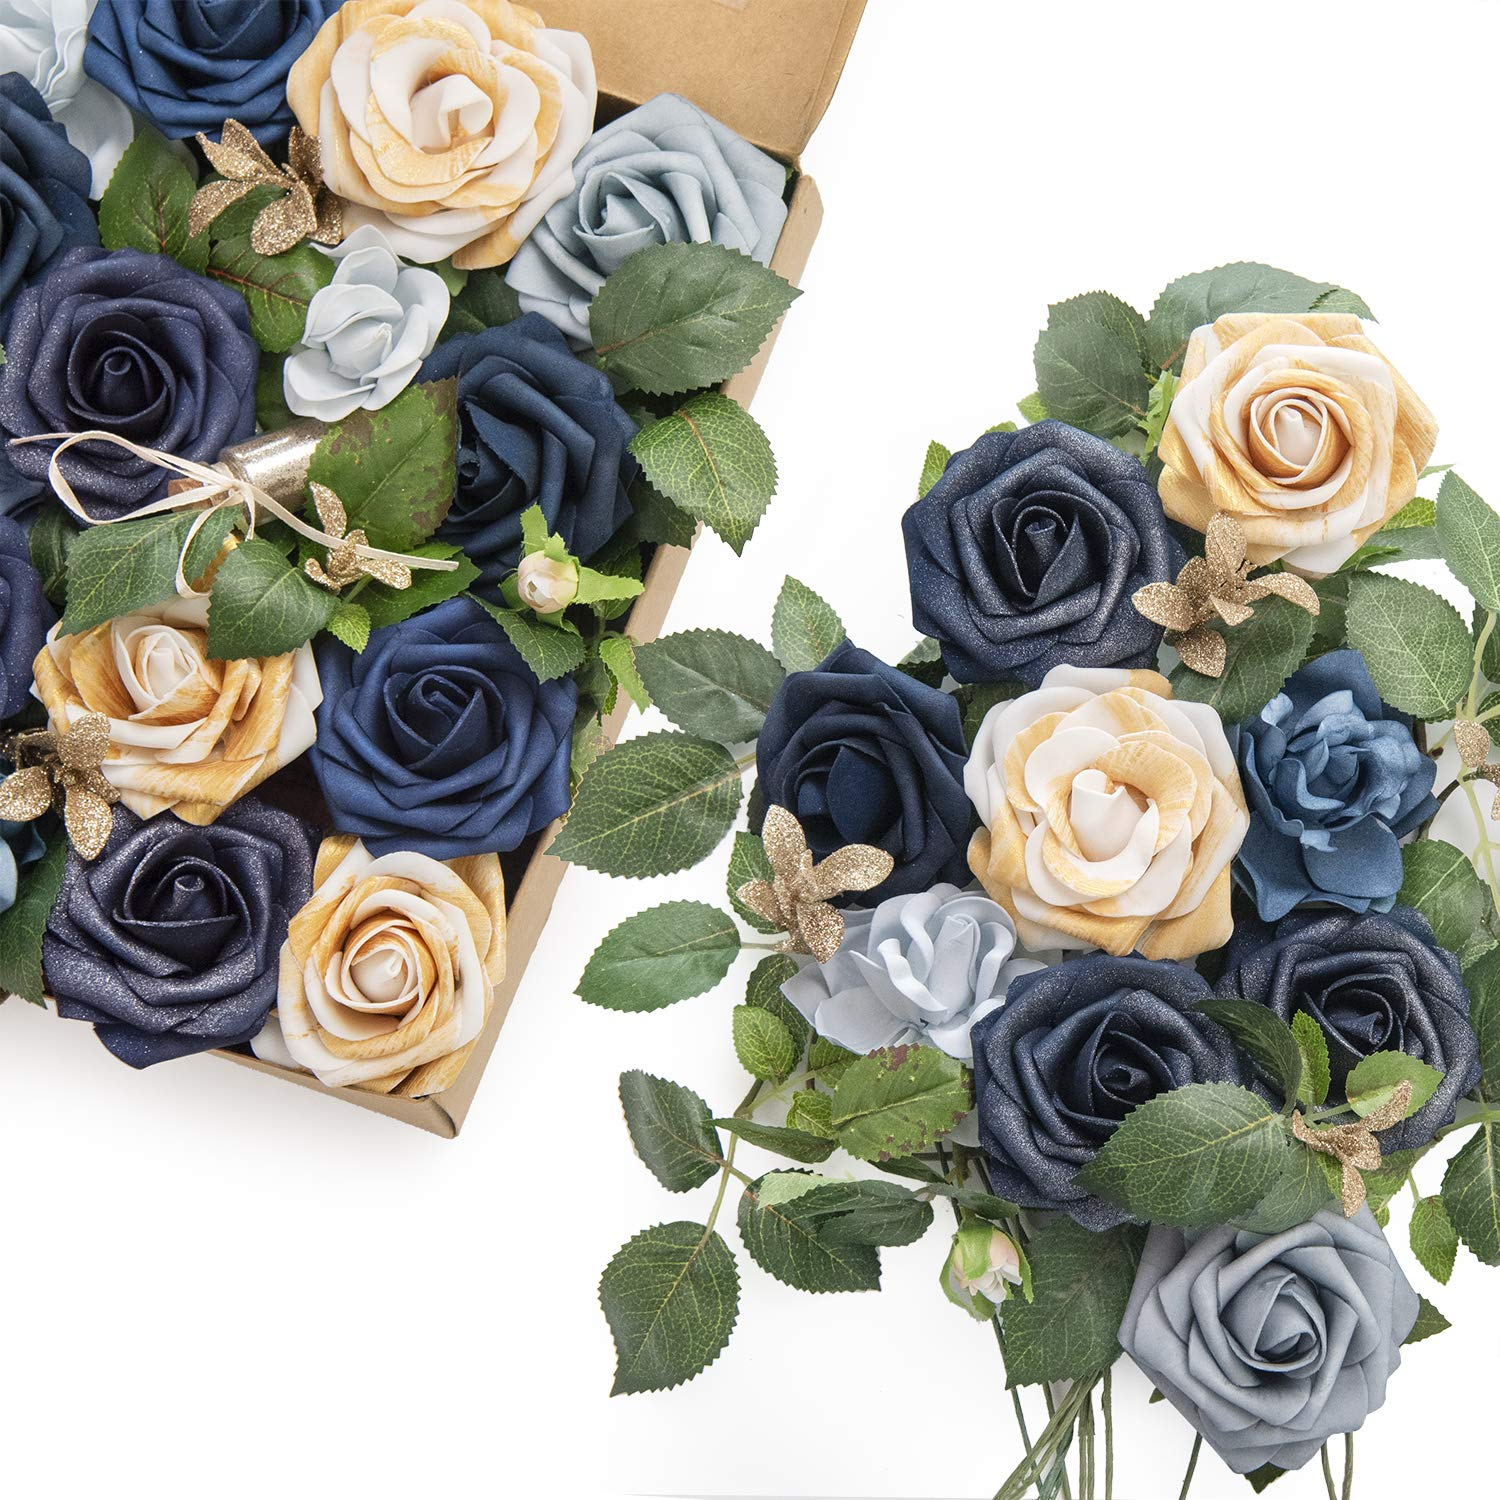 Ling's moment Artificial Flowers Midnight Blue Combo for DIY Wedding Bouquets Centerpieces Arrangements Party Baby Shower Home Decorations